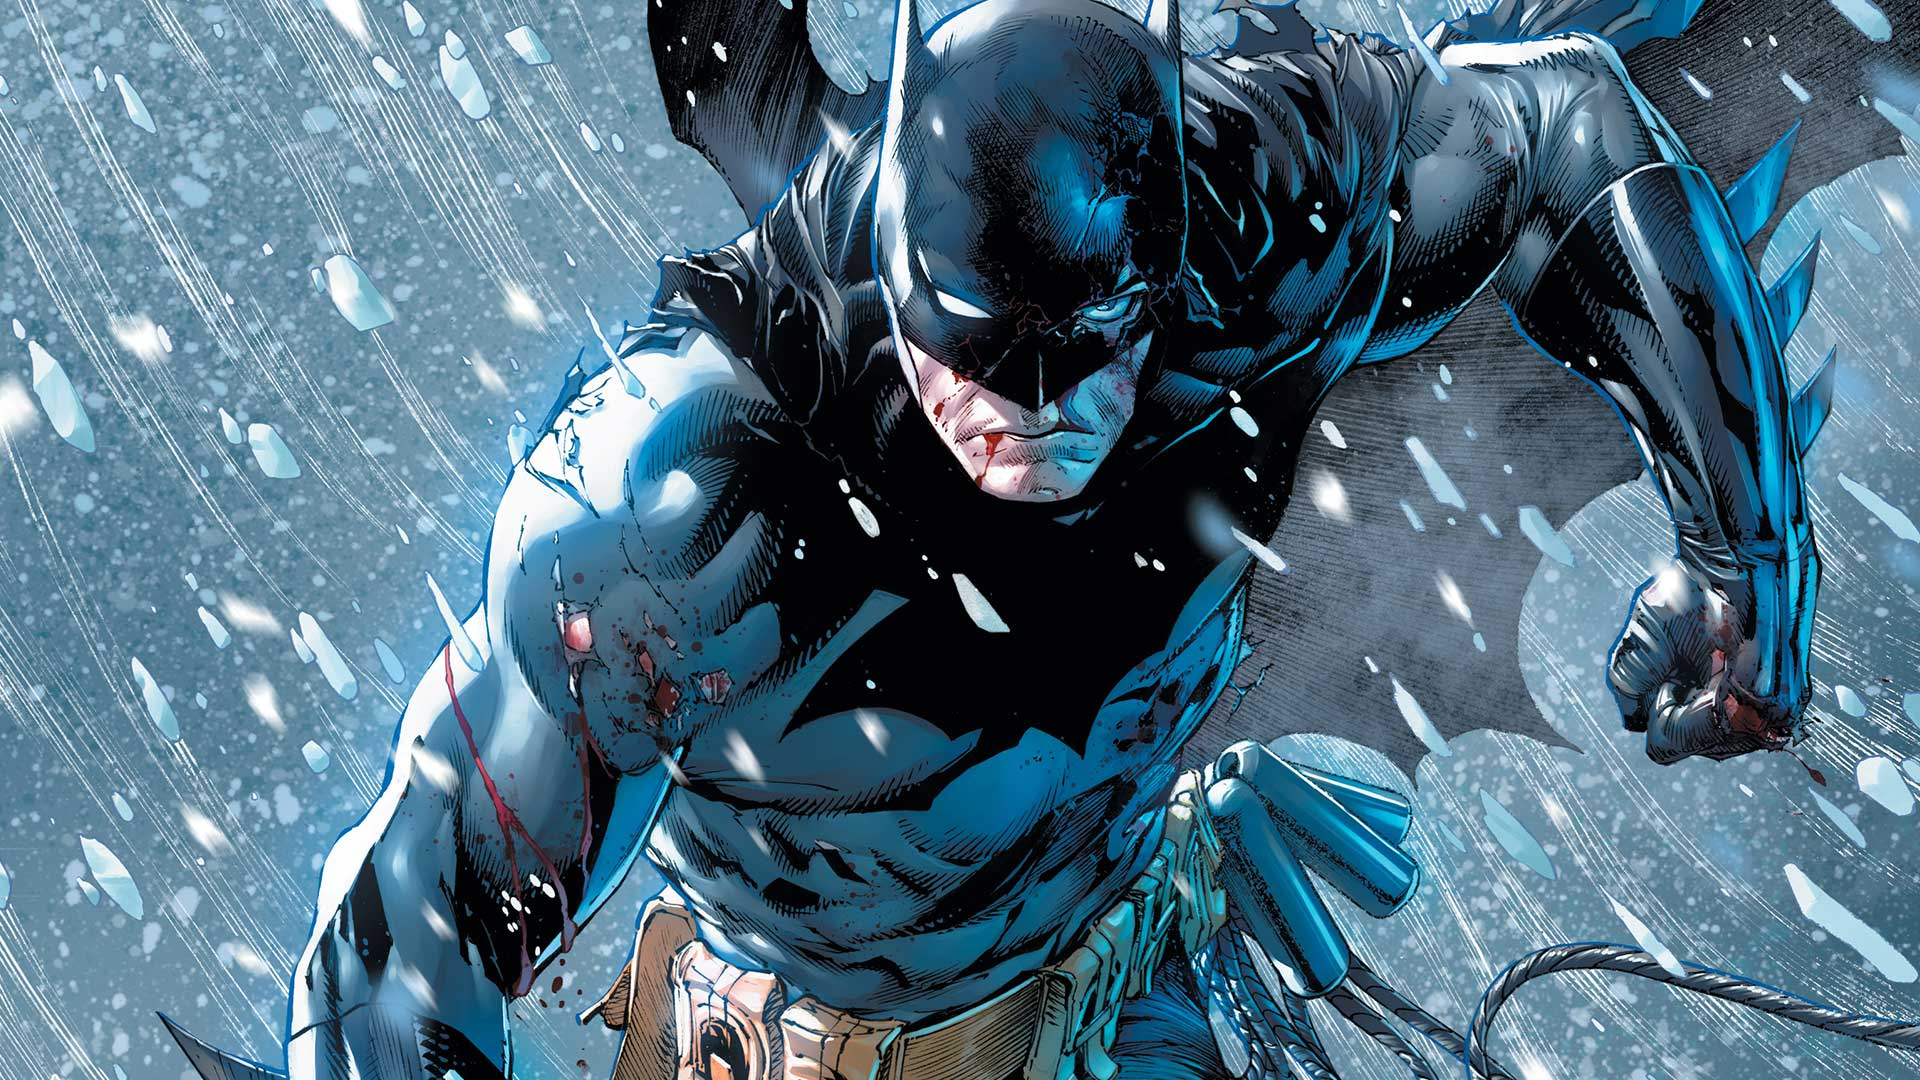 Batman #57 review: Batman vs. The Beast